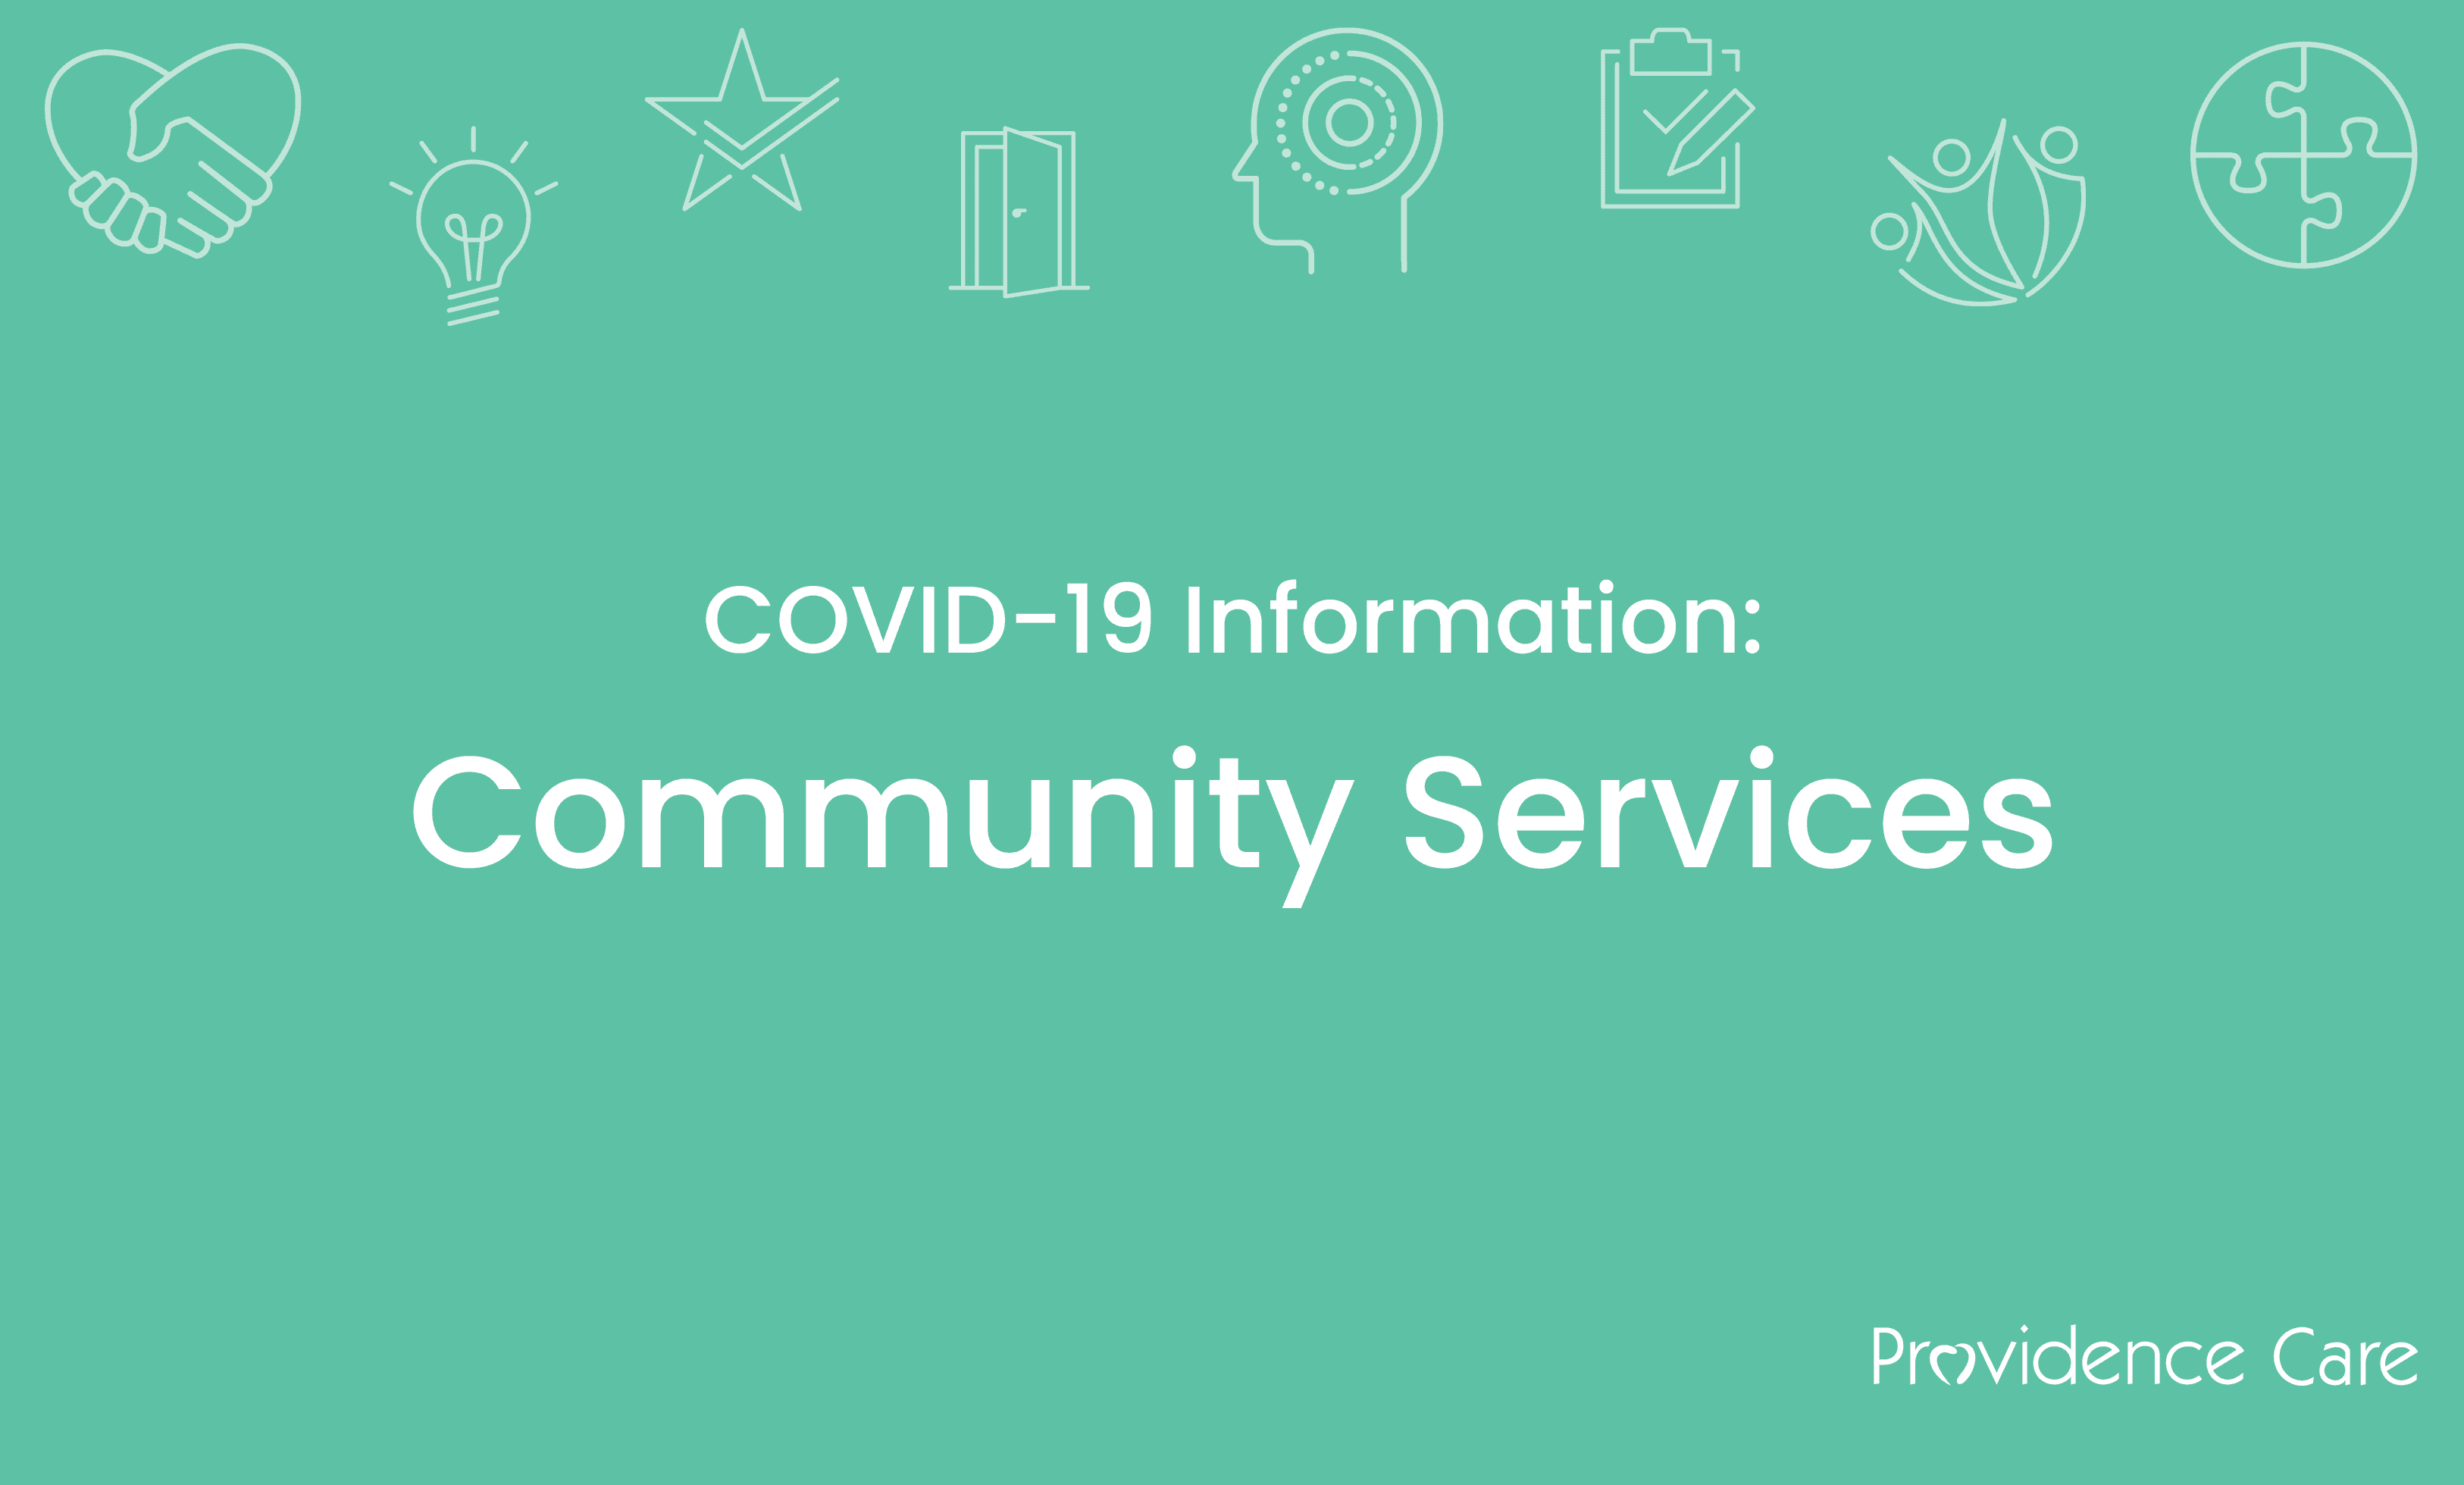 Teams continue to offer in-person programming at community sites, in client's homes and long-term care homes. COVID-19 safety measures are in place.